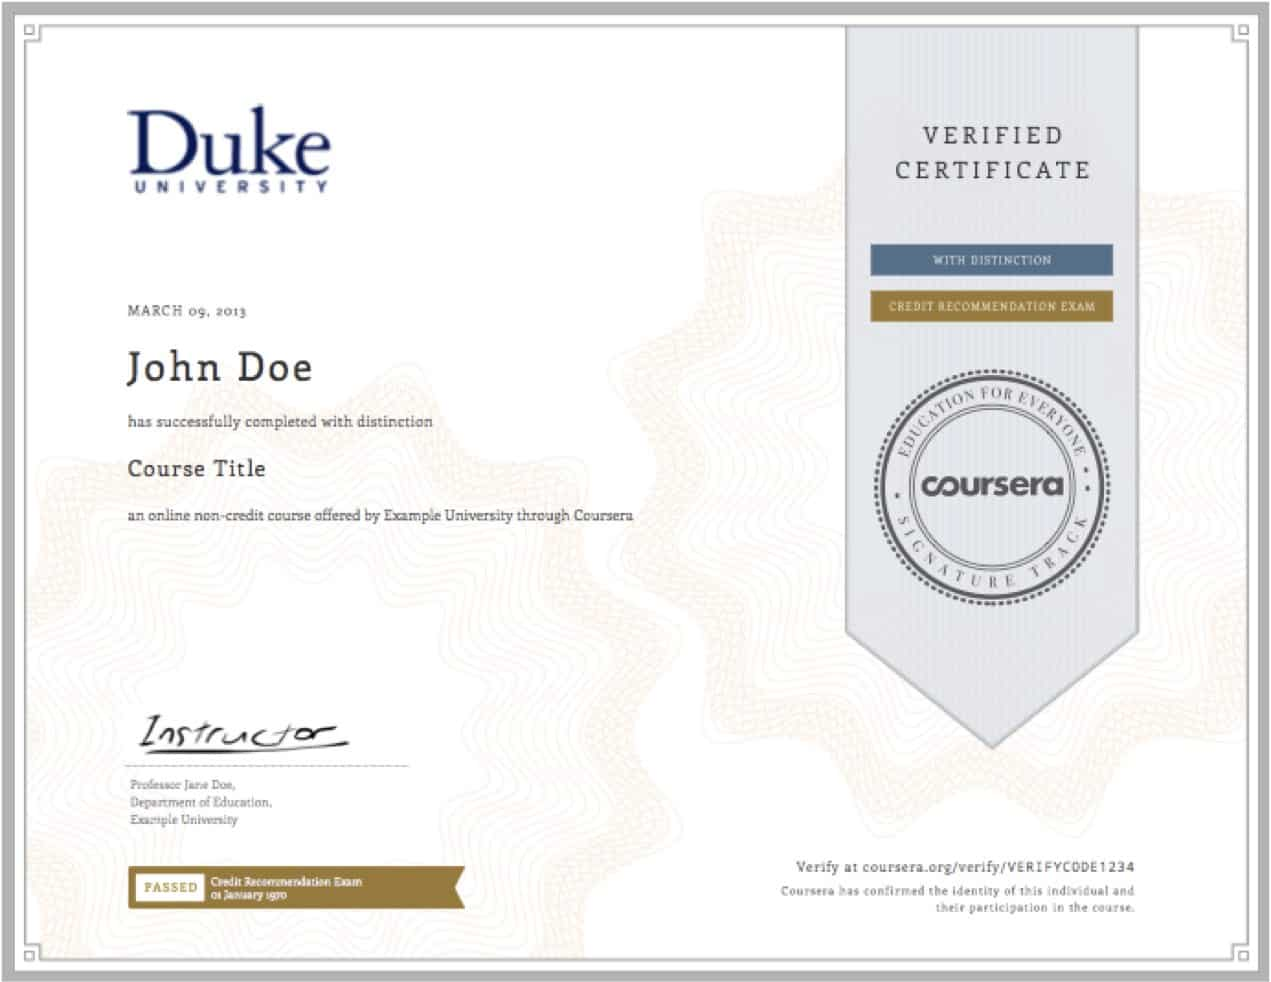 Coursera Verified Certificate